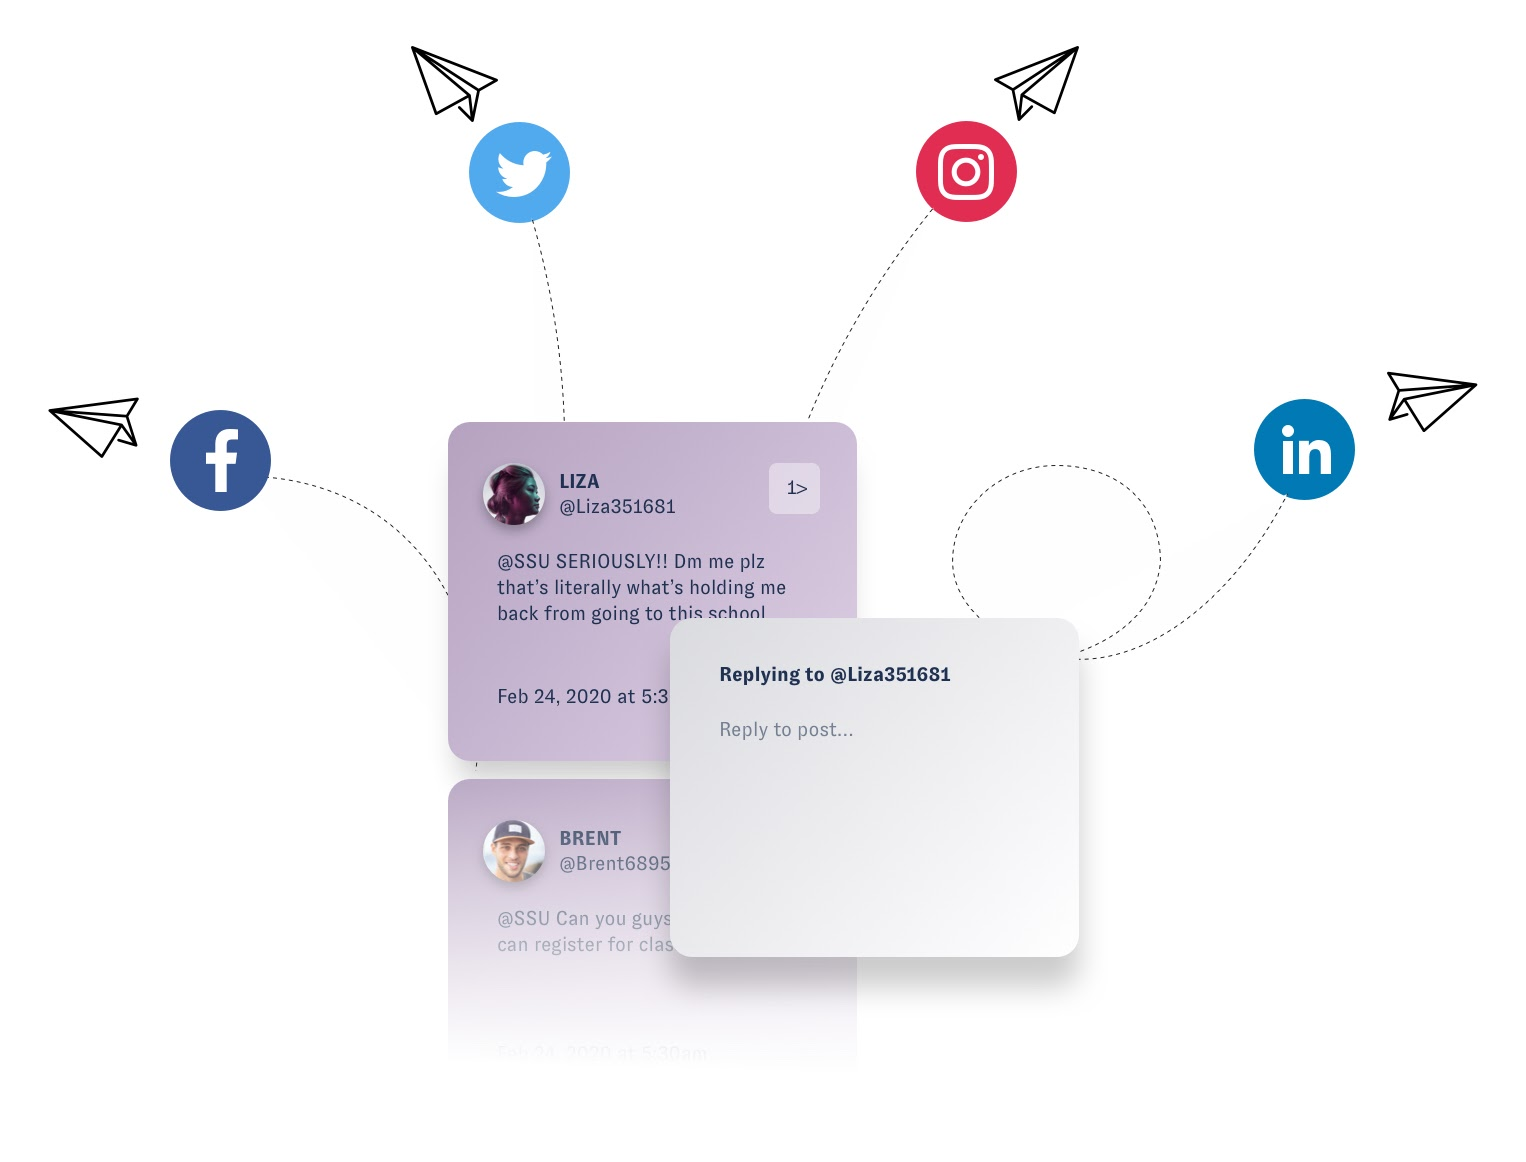 "This image shows several DM's or @mentions that a company needs to respond to. Both of these boxes are purple. A gray box over them says ""replying to @Liza351681"" which is the first of the two messages. The Engage image is connected to icons of Facebook, Twitter, Instagram, and LinkedIn with a dashed line. Next to each icon is a paper airplane."